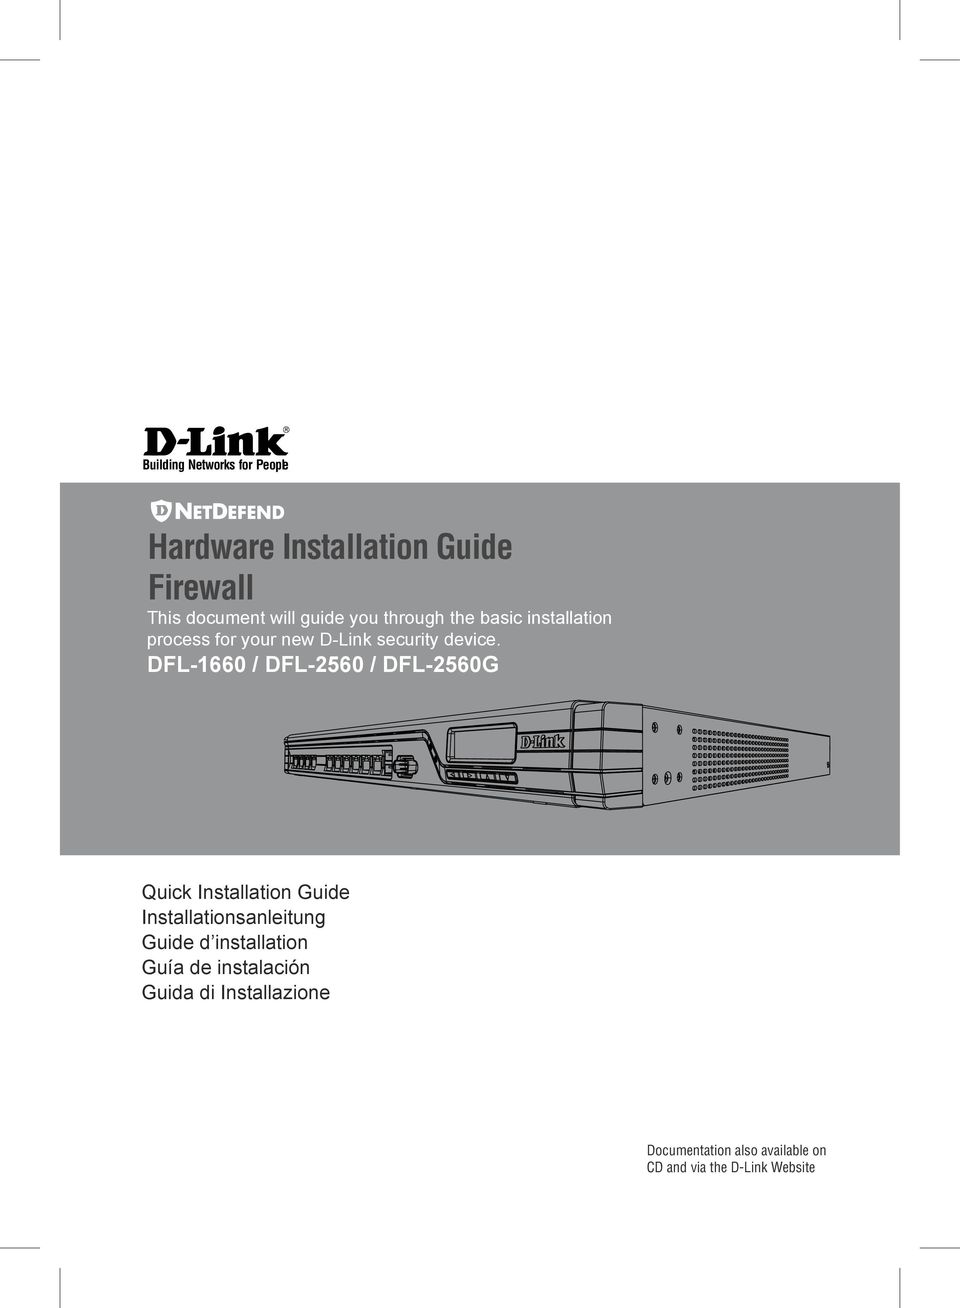 DFL-1660 / DFL-2560 / DFL-2560G Quick Installation Guide Installationsanleitung Guide d